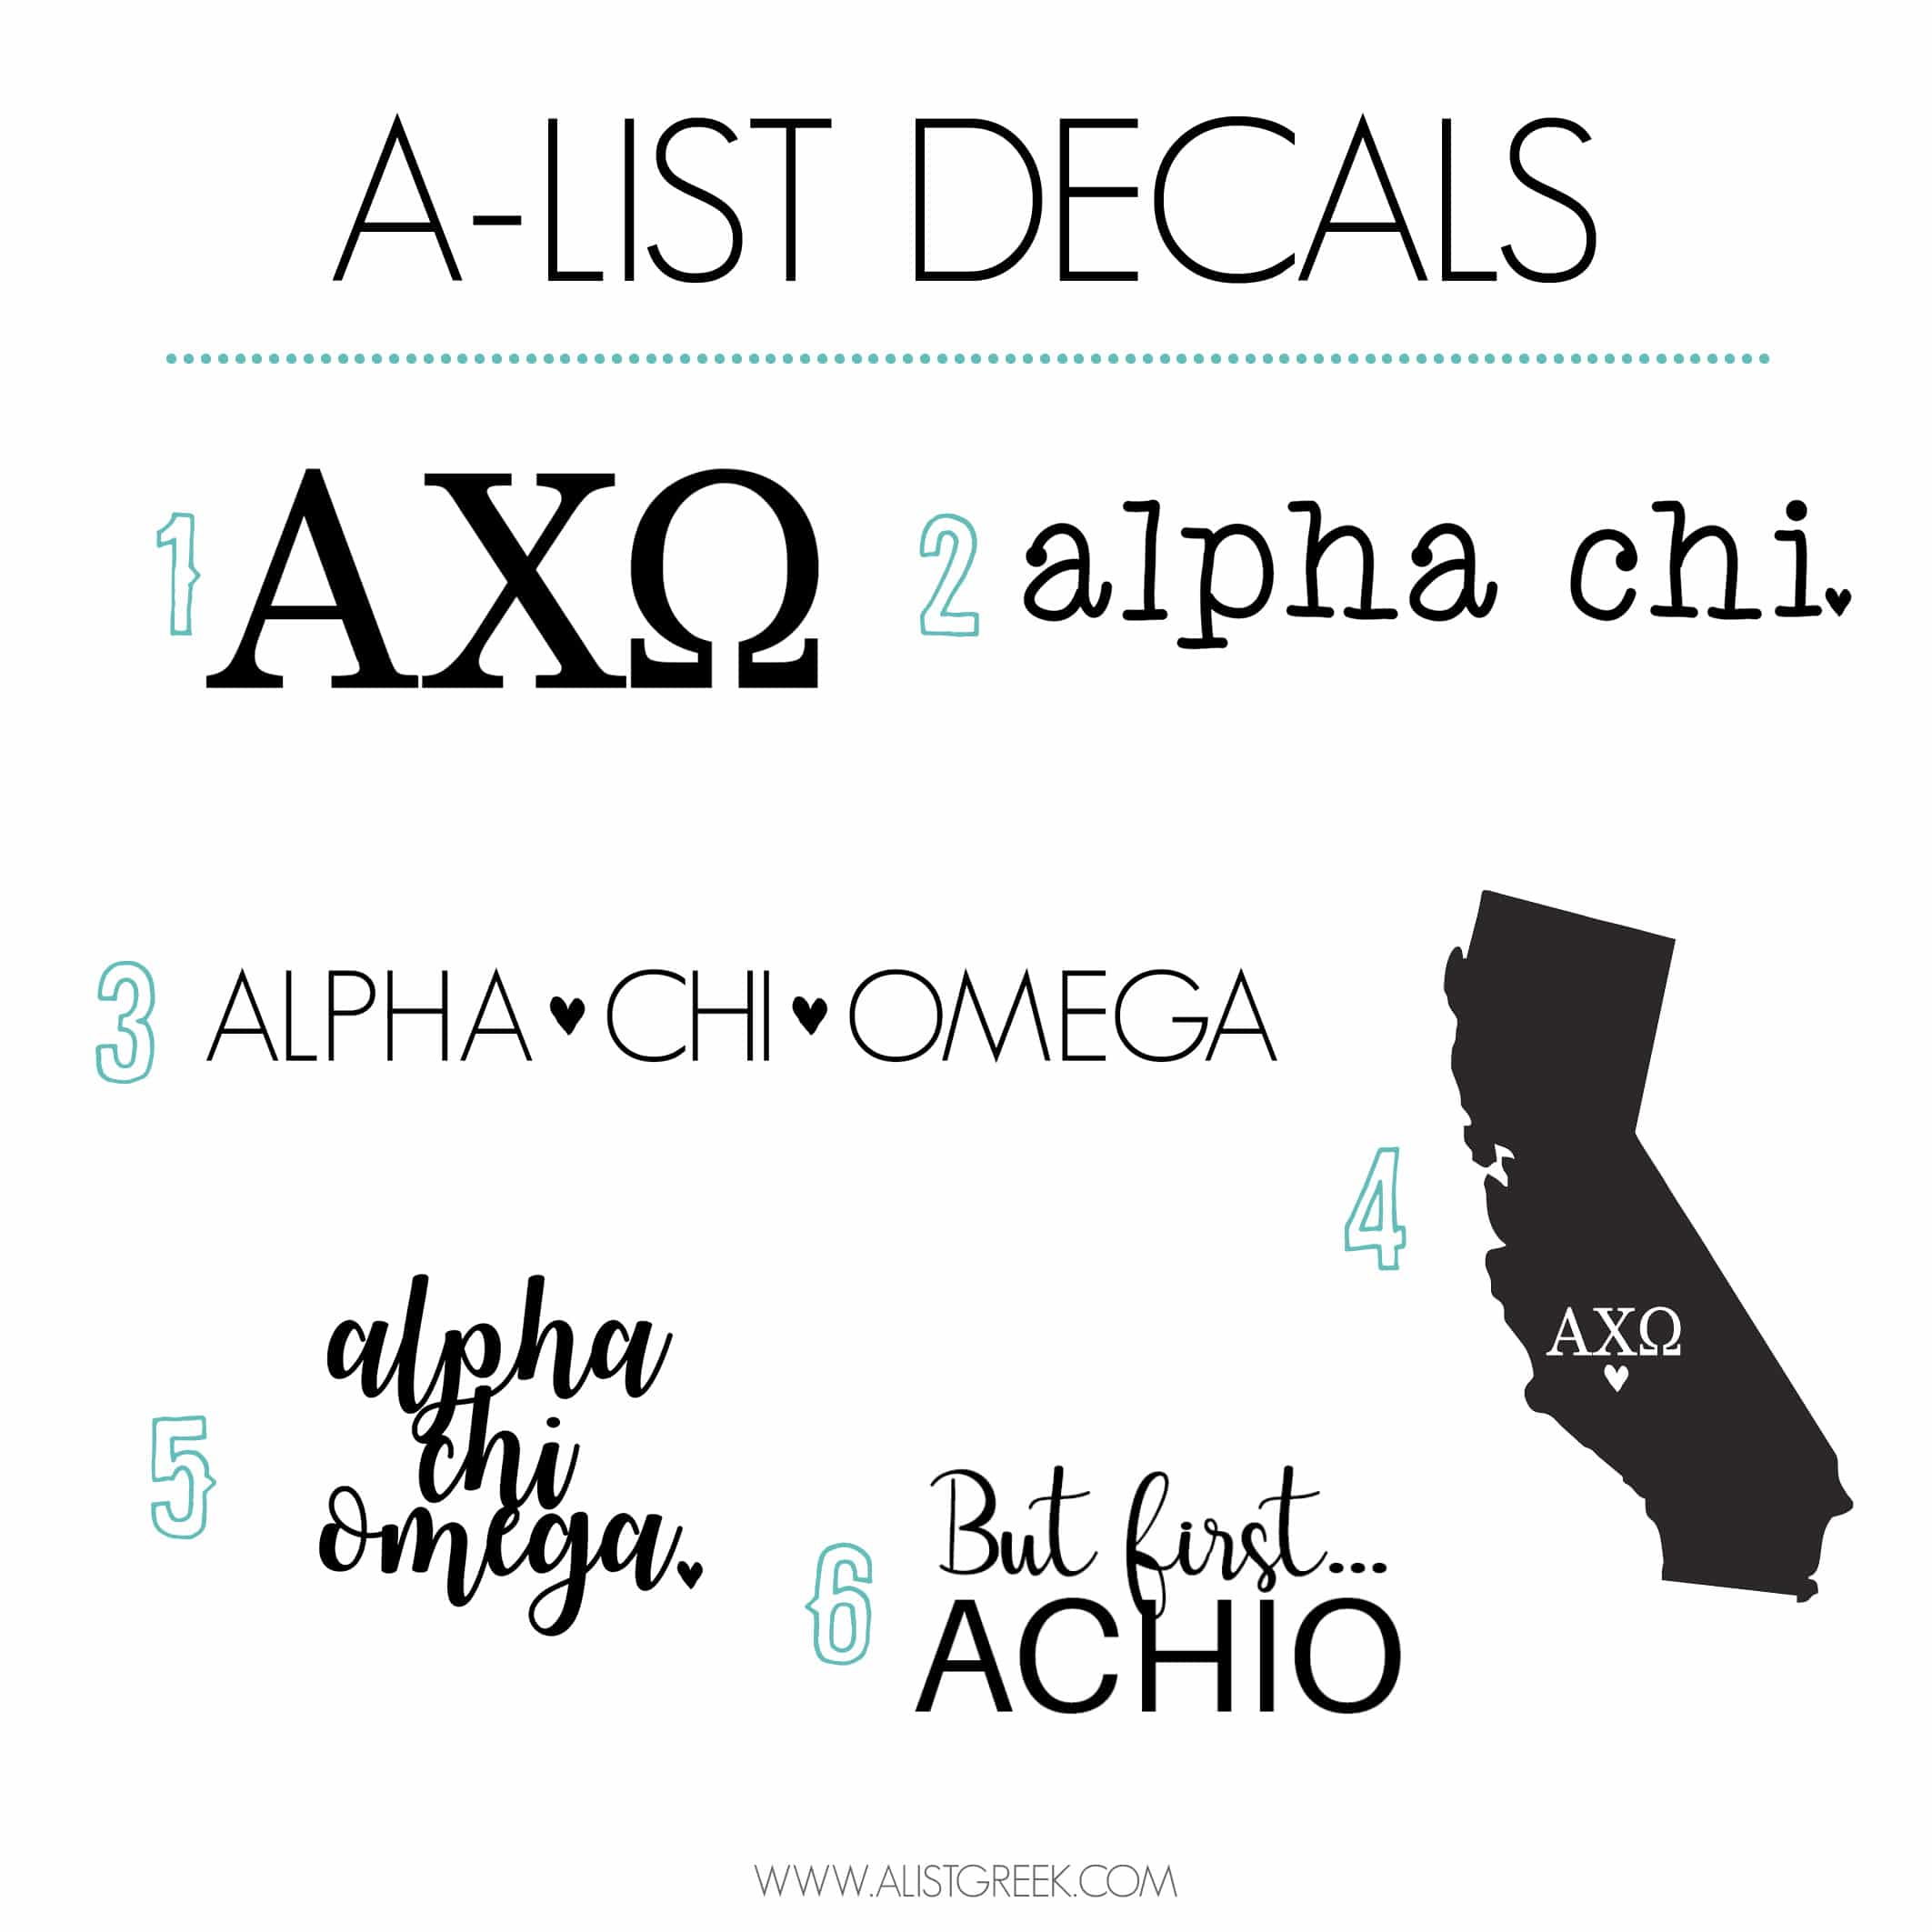 Super Mario Wall Sticker Alpha Chi Omega Stickers Kamos Sticker